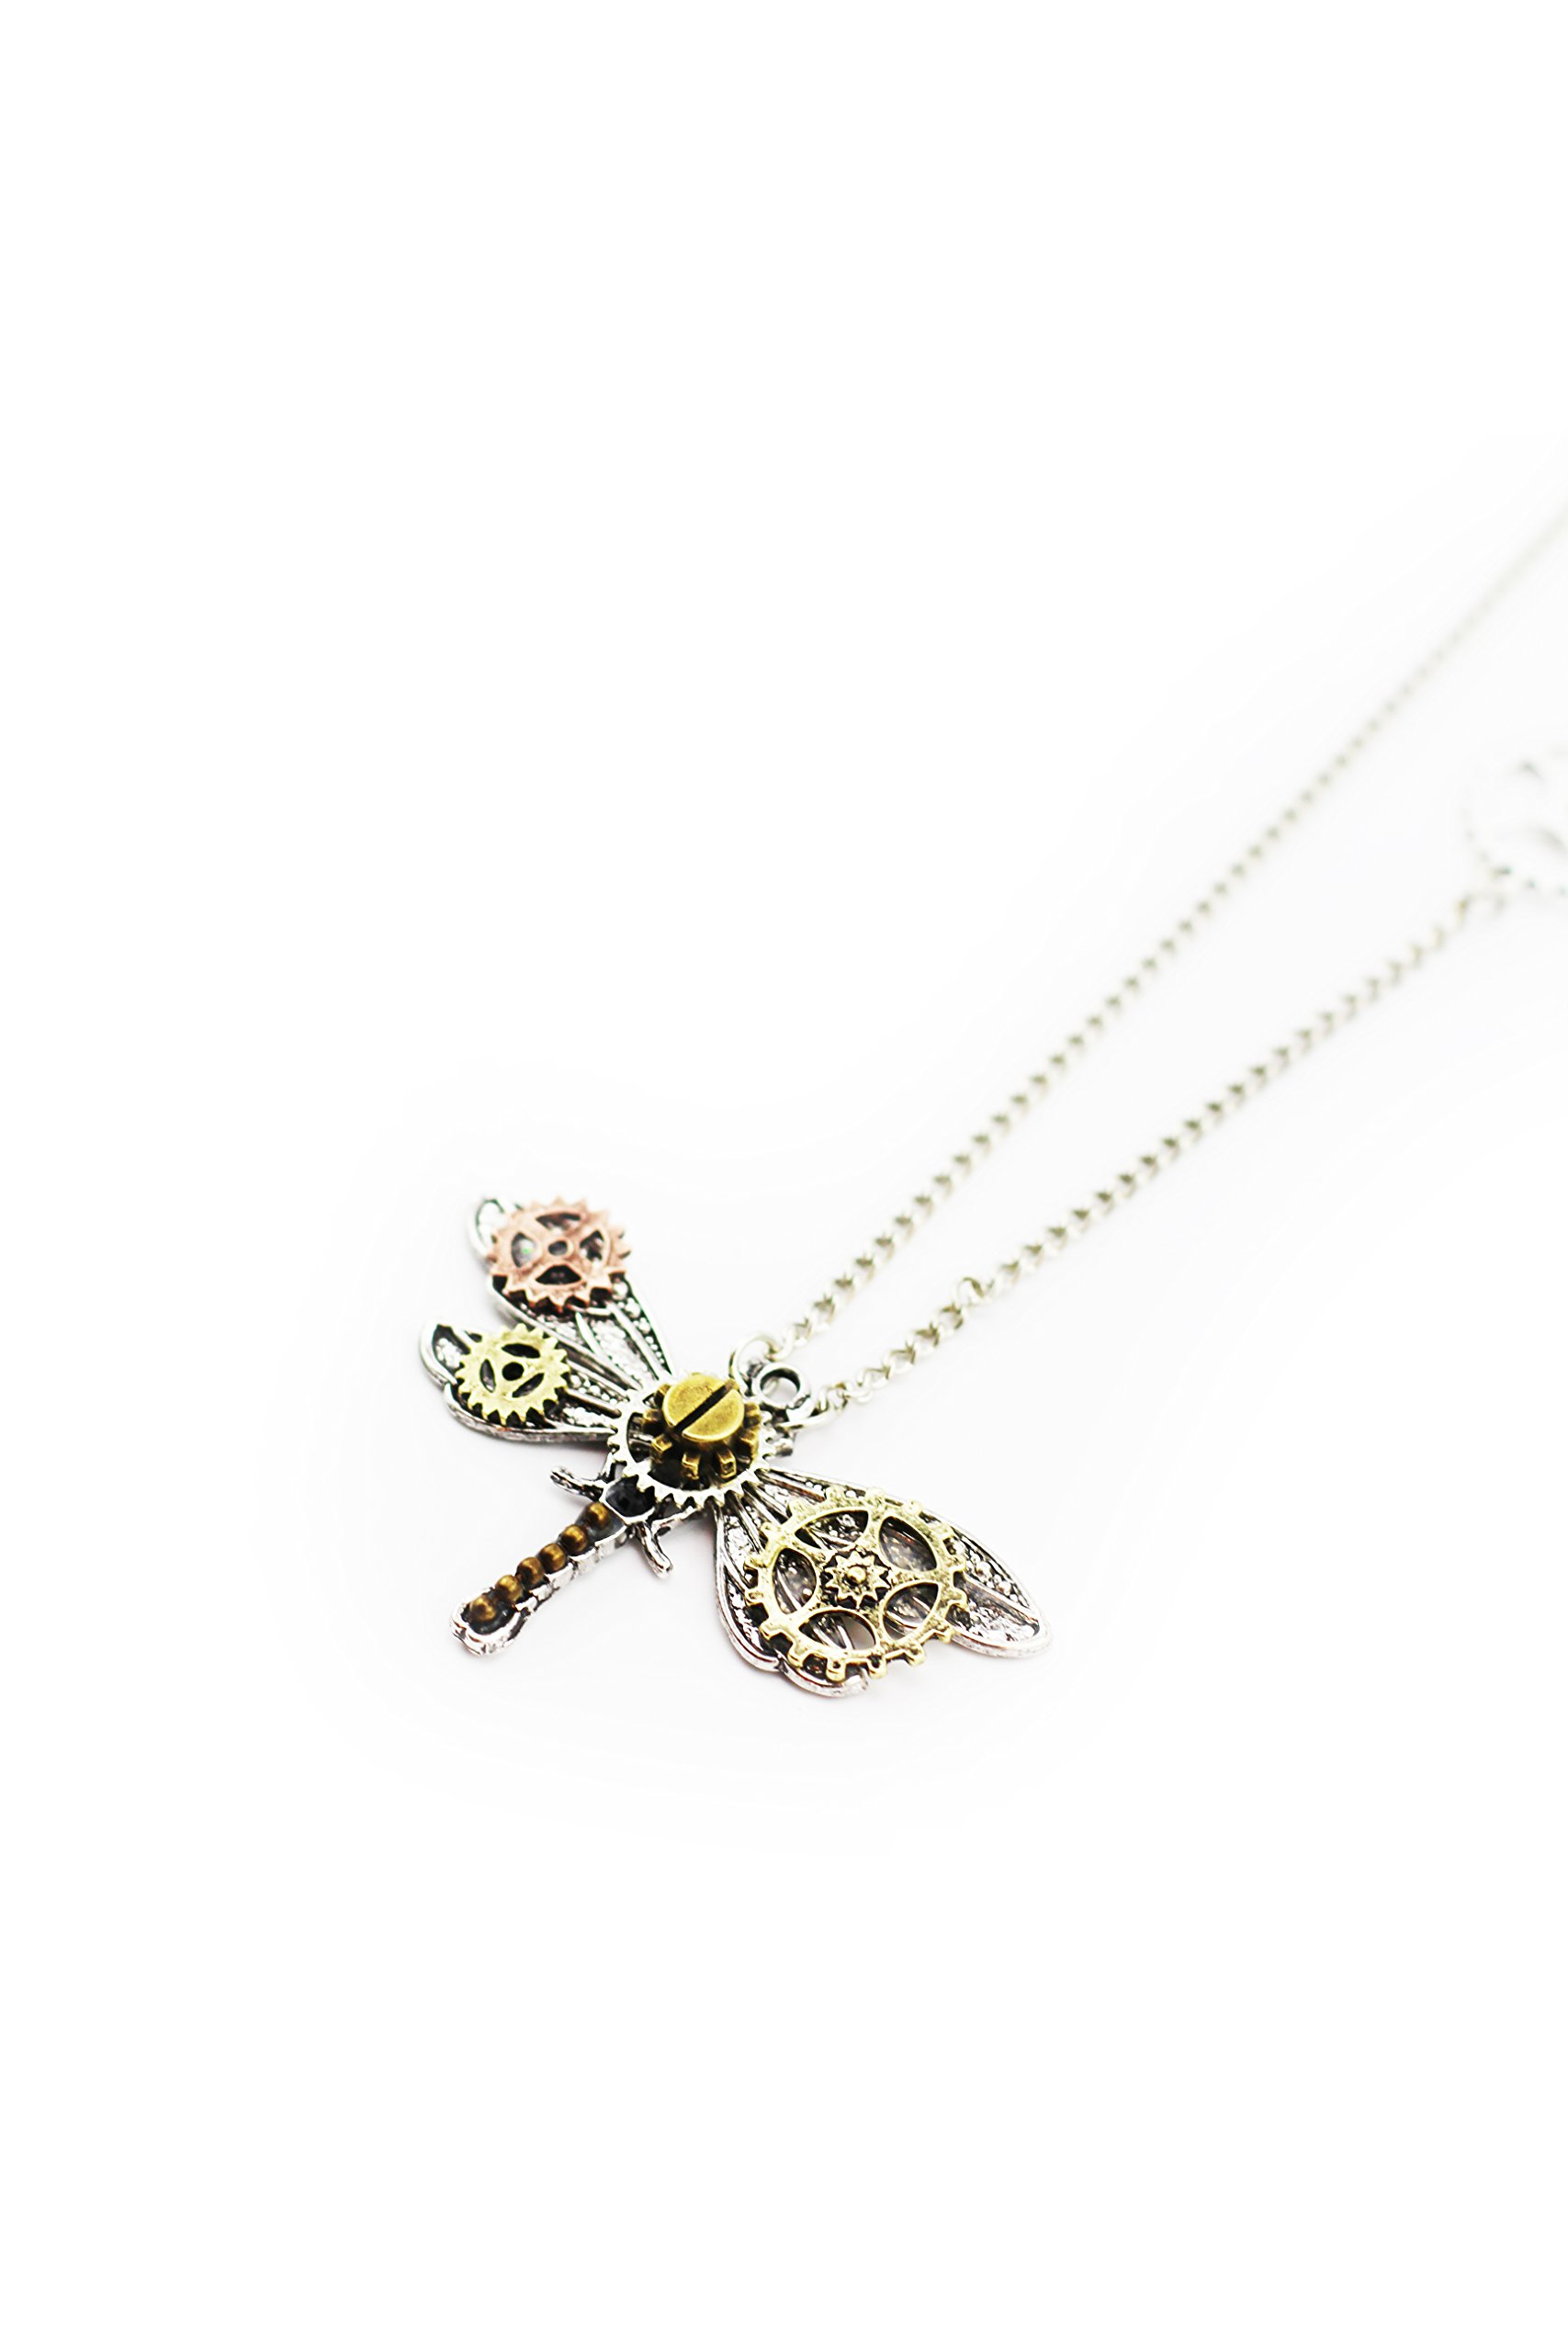 Frankenstrap Steampunk Dragonfly Pendant Necklace - Vintage Gear Cosplay Jewelery 5